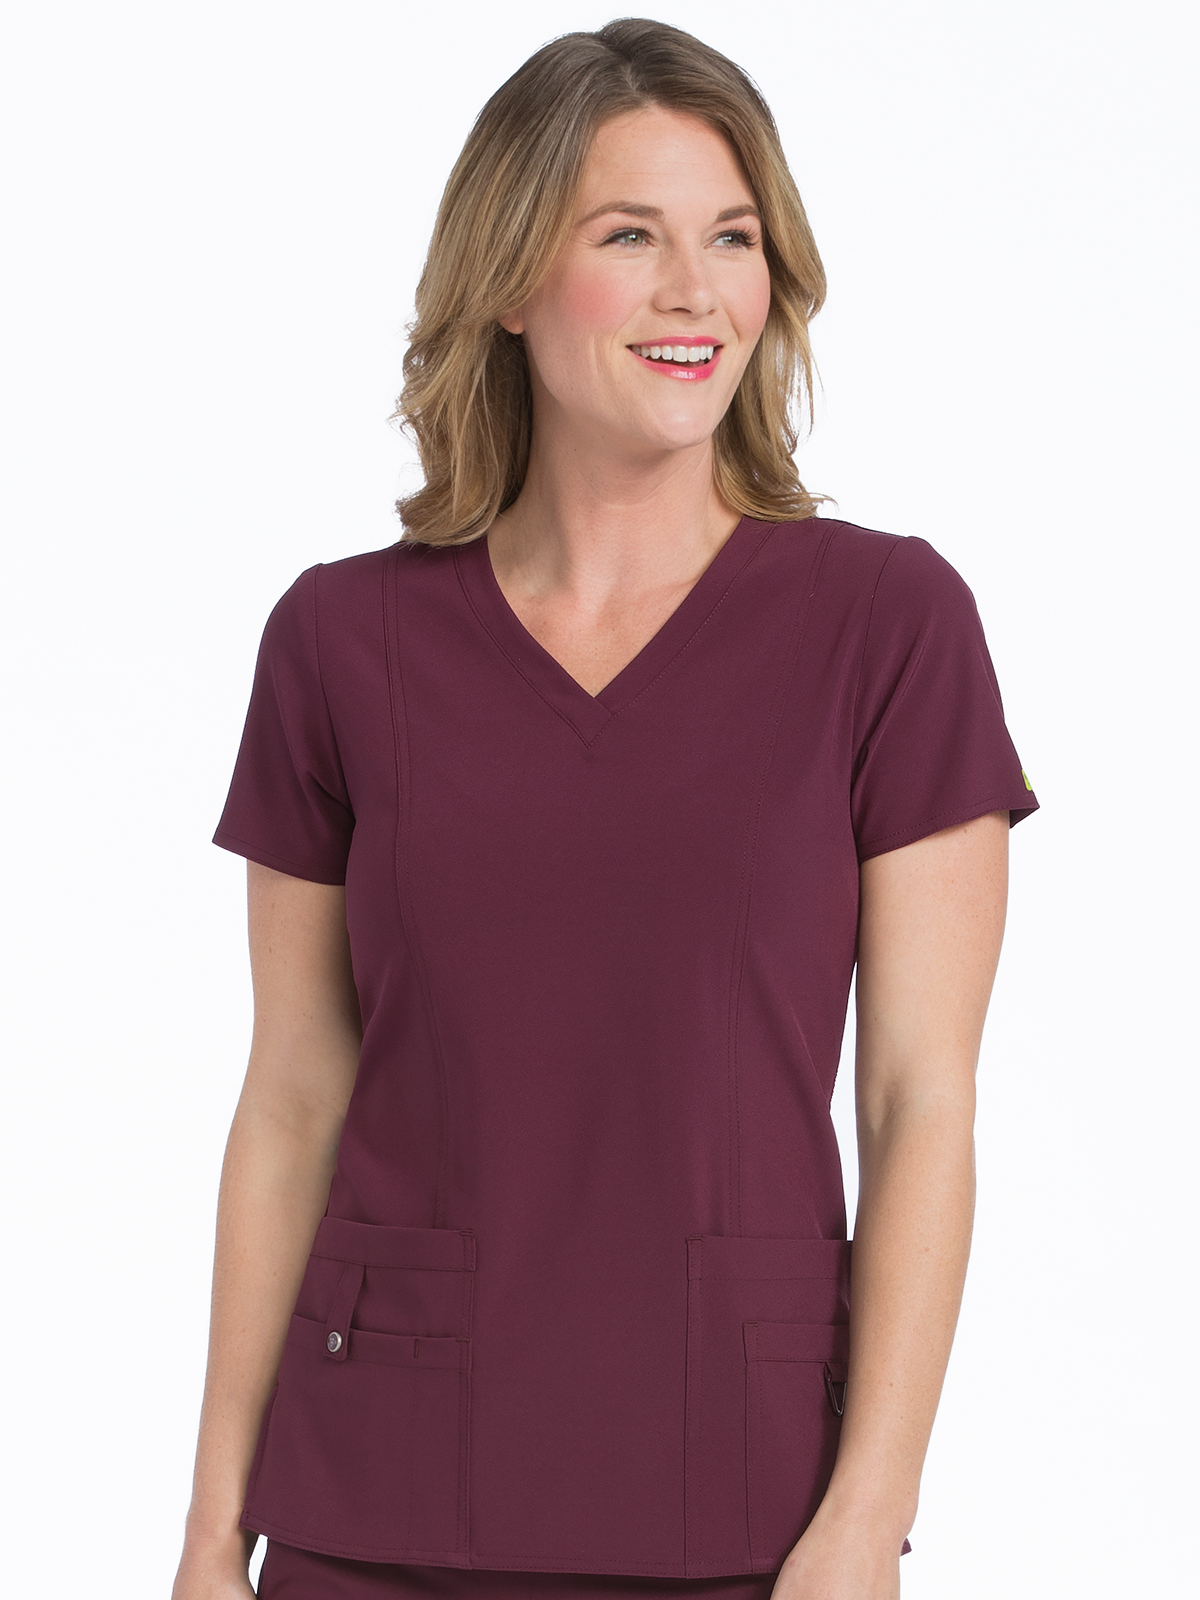 Top, MCO-8408